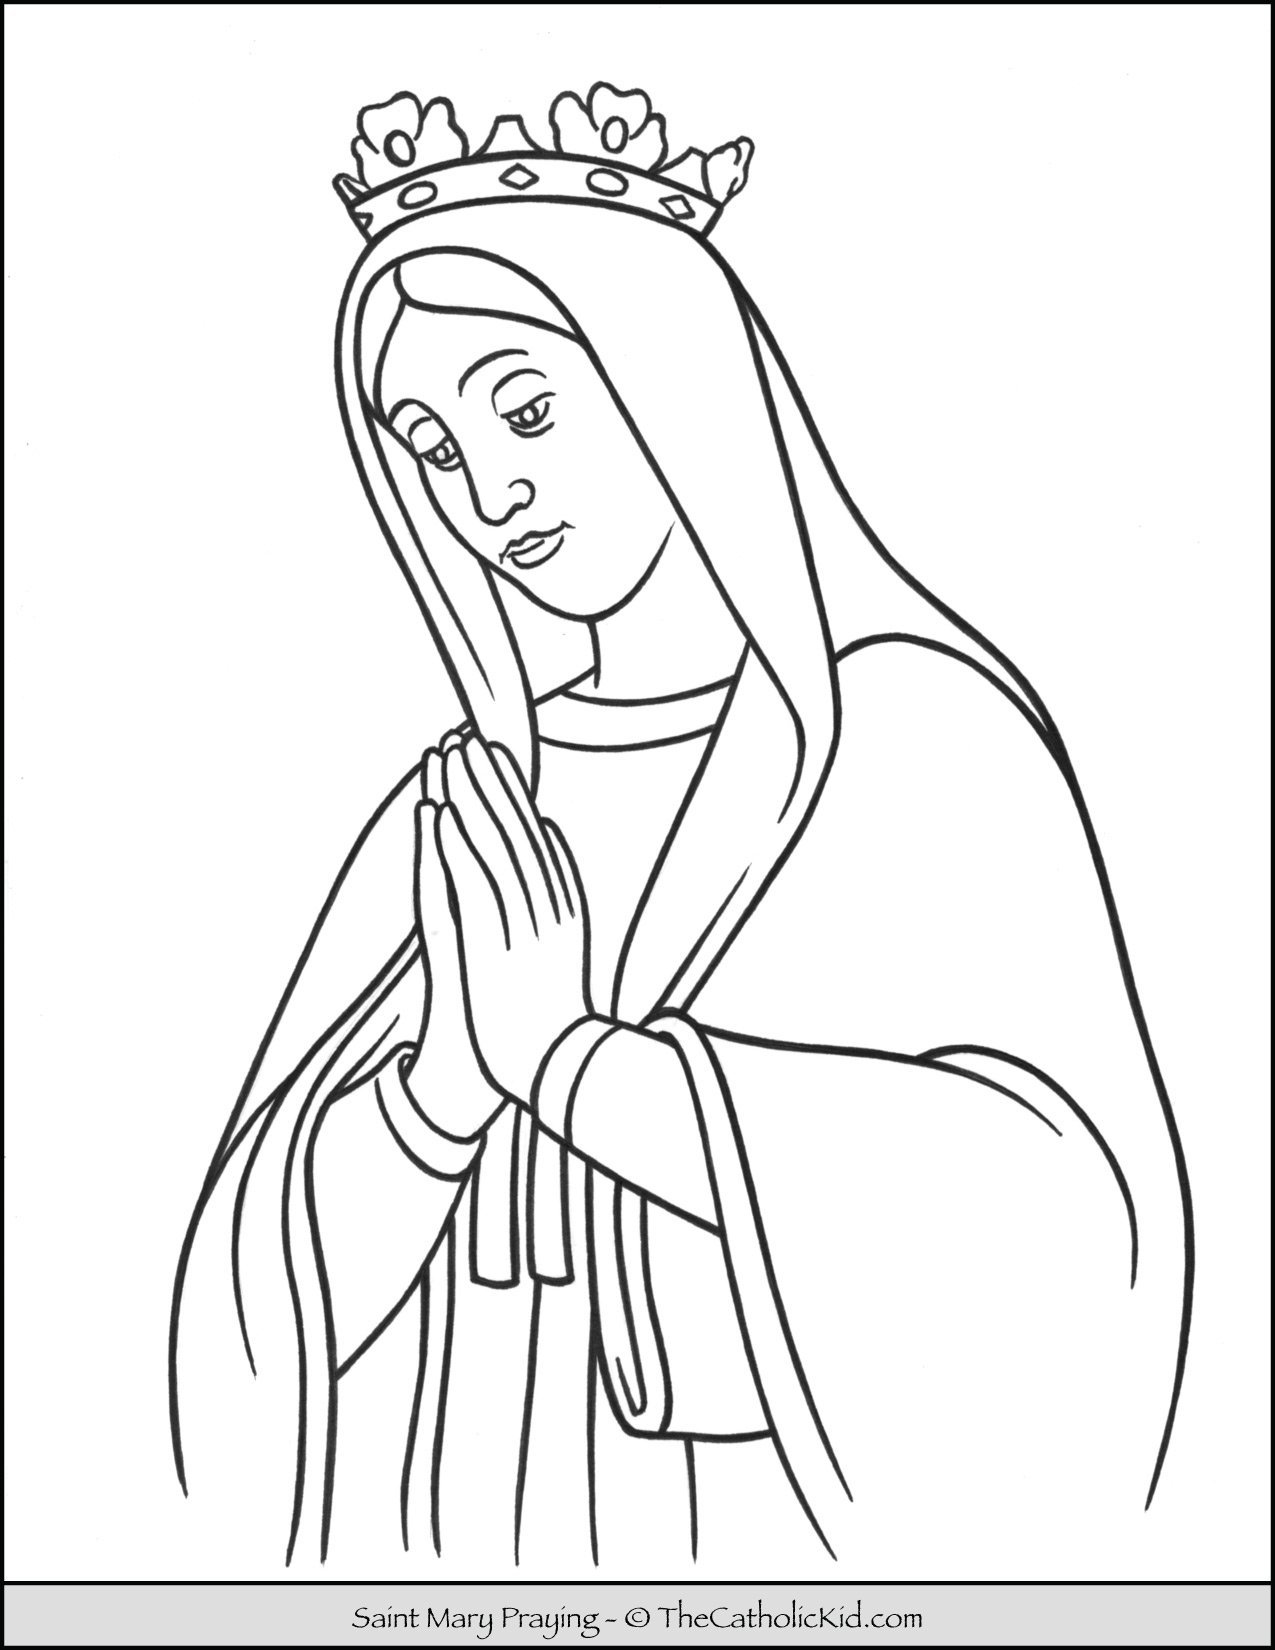 Saint Mary Praying Coloring Page